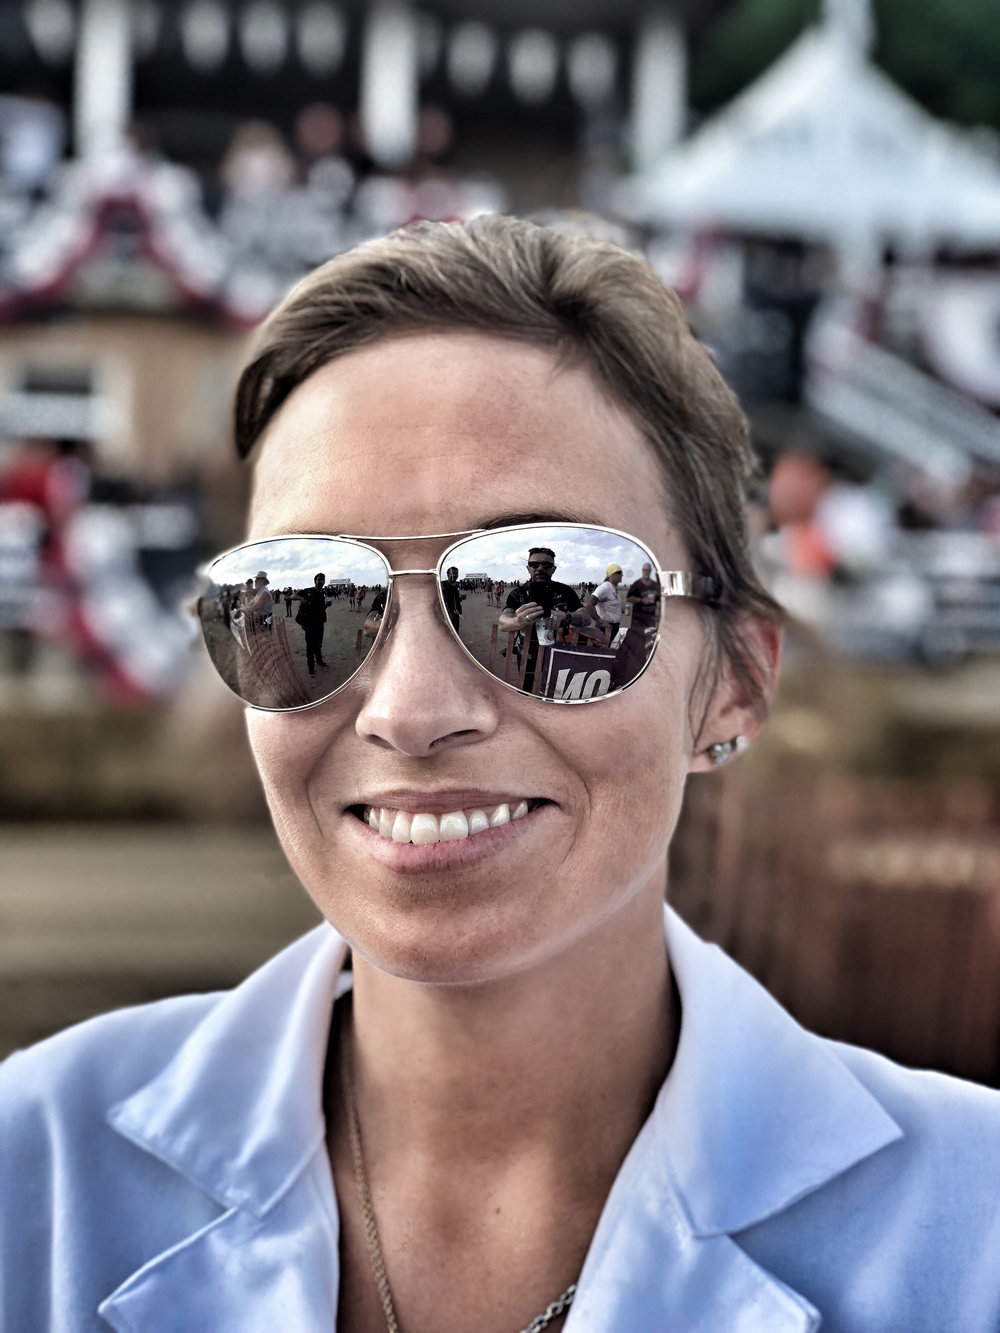 Heather Brownlee: She is from Lone Rock WI, she has been riding motorcycles since 13, riding her fathers bikes in the yard. She was at the TROG event to help her brother who was racing a Knucklehead and be in his pit crew!